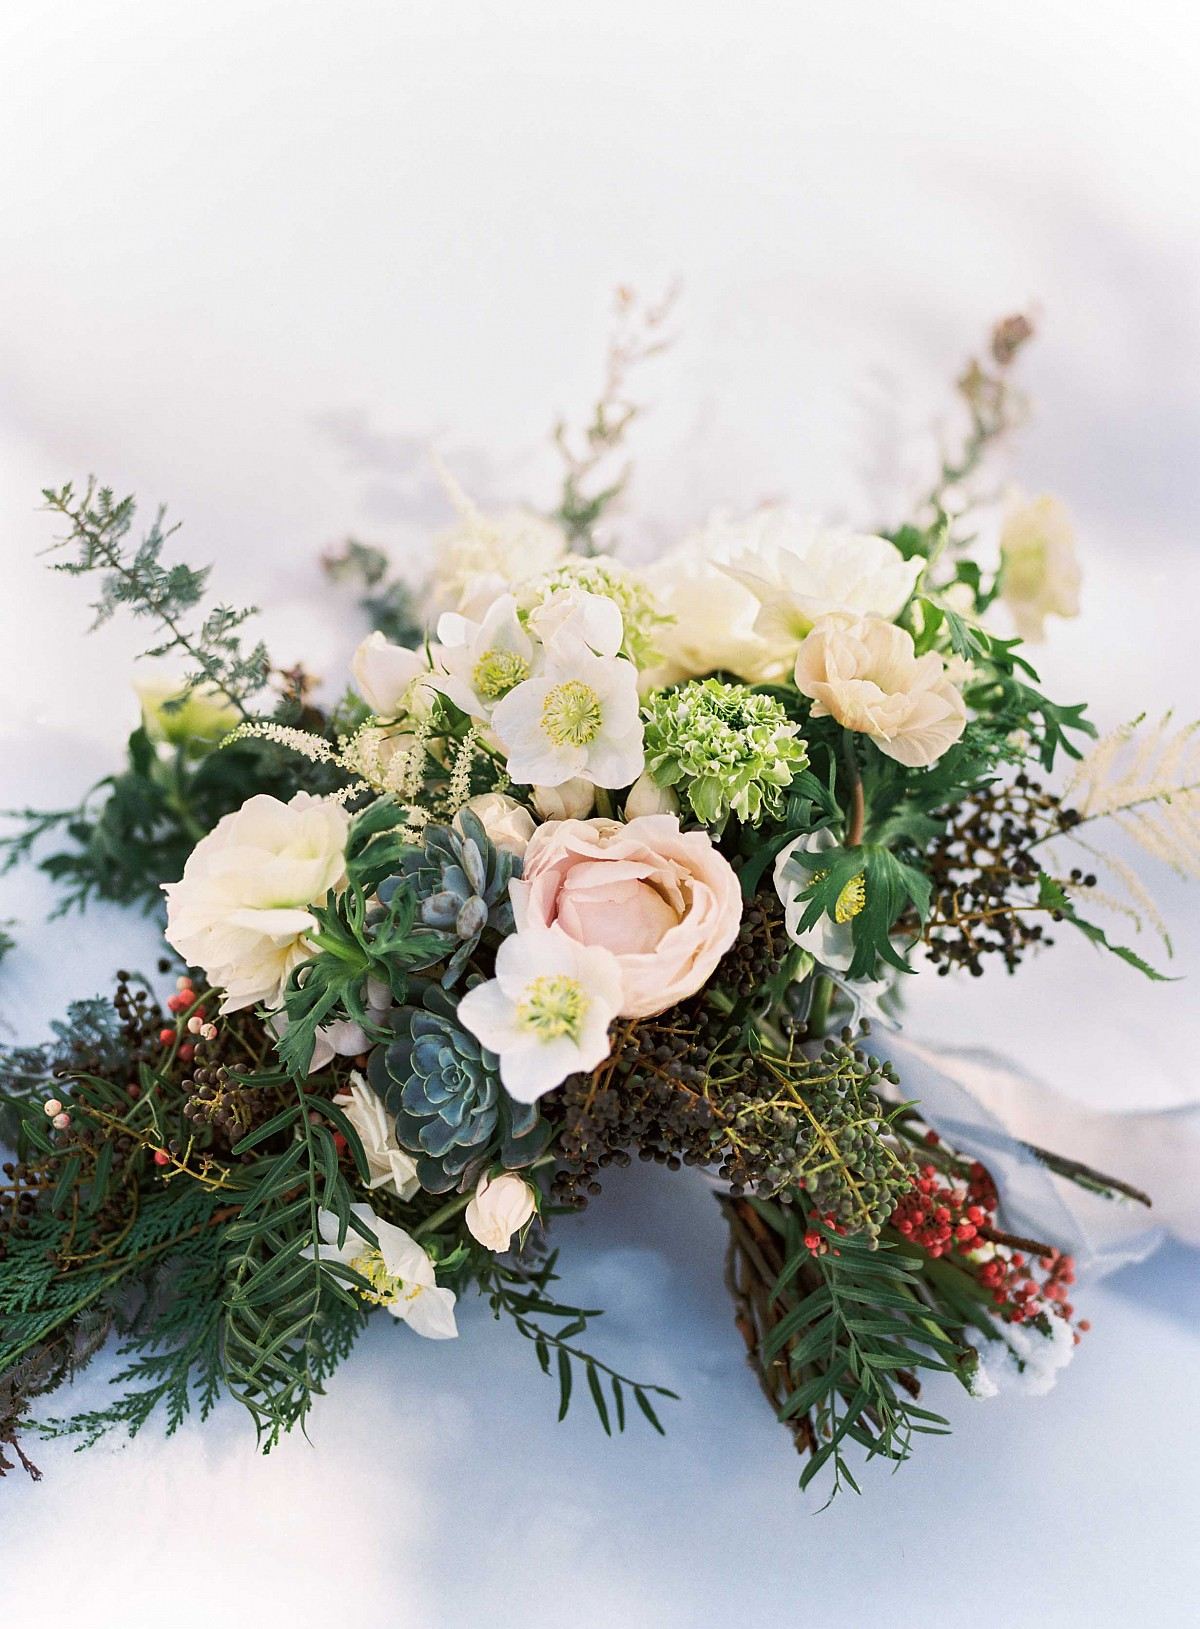 Brice and Ian's Gold and Emerald Winter Wedding